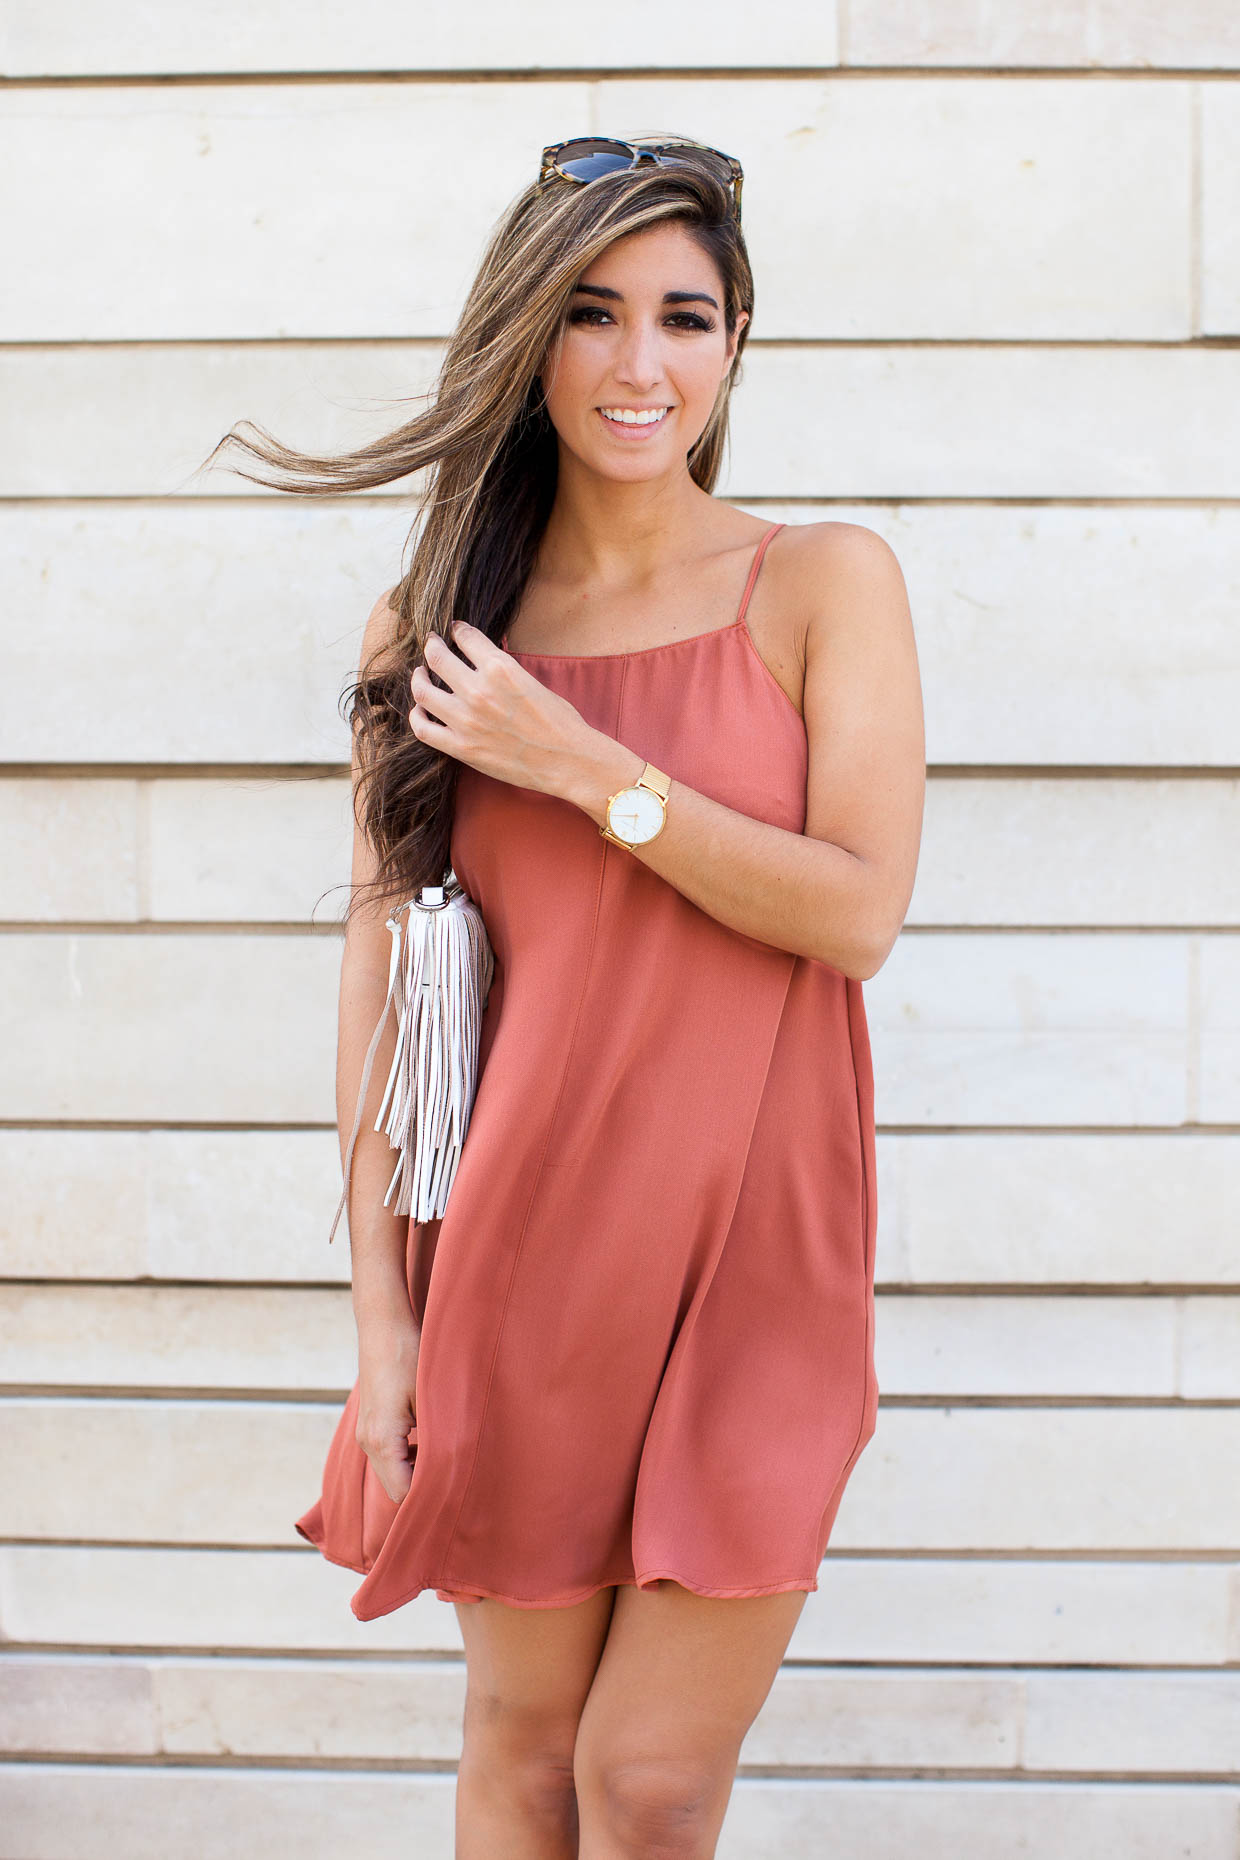 The Darling Detail wears little shift dress from Nordstrom